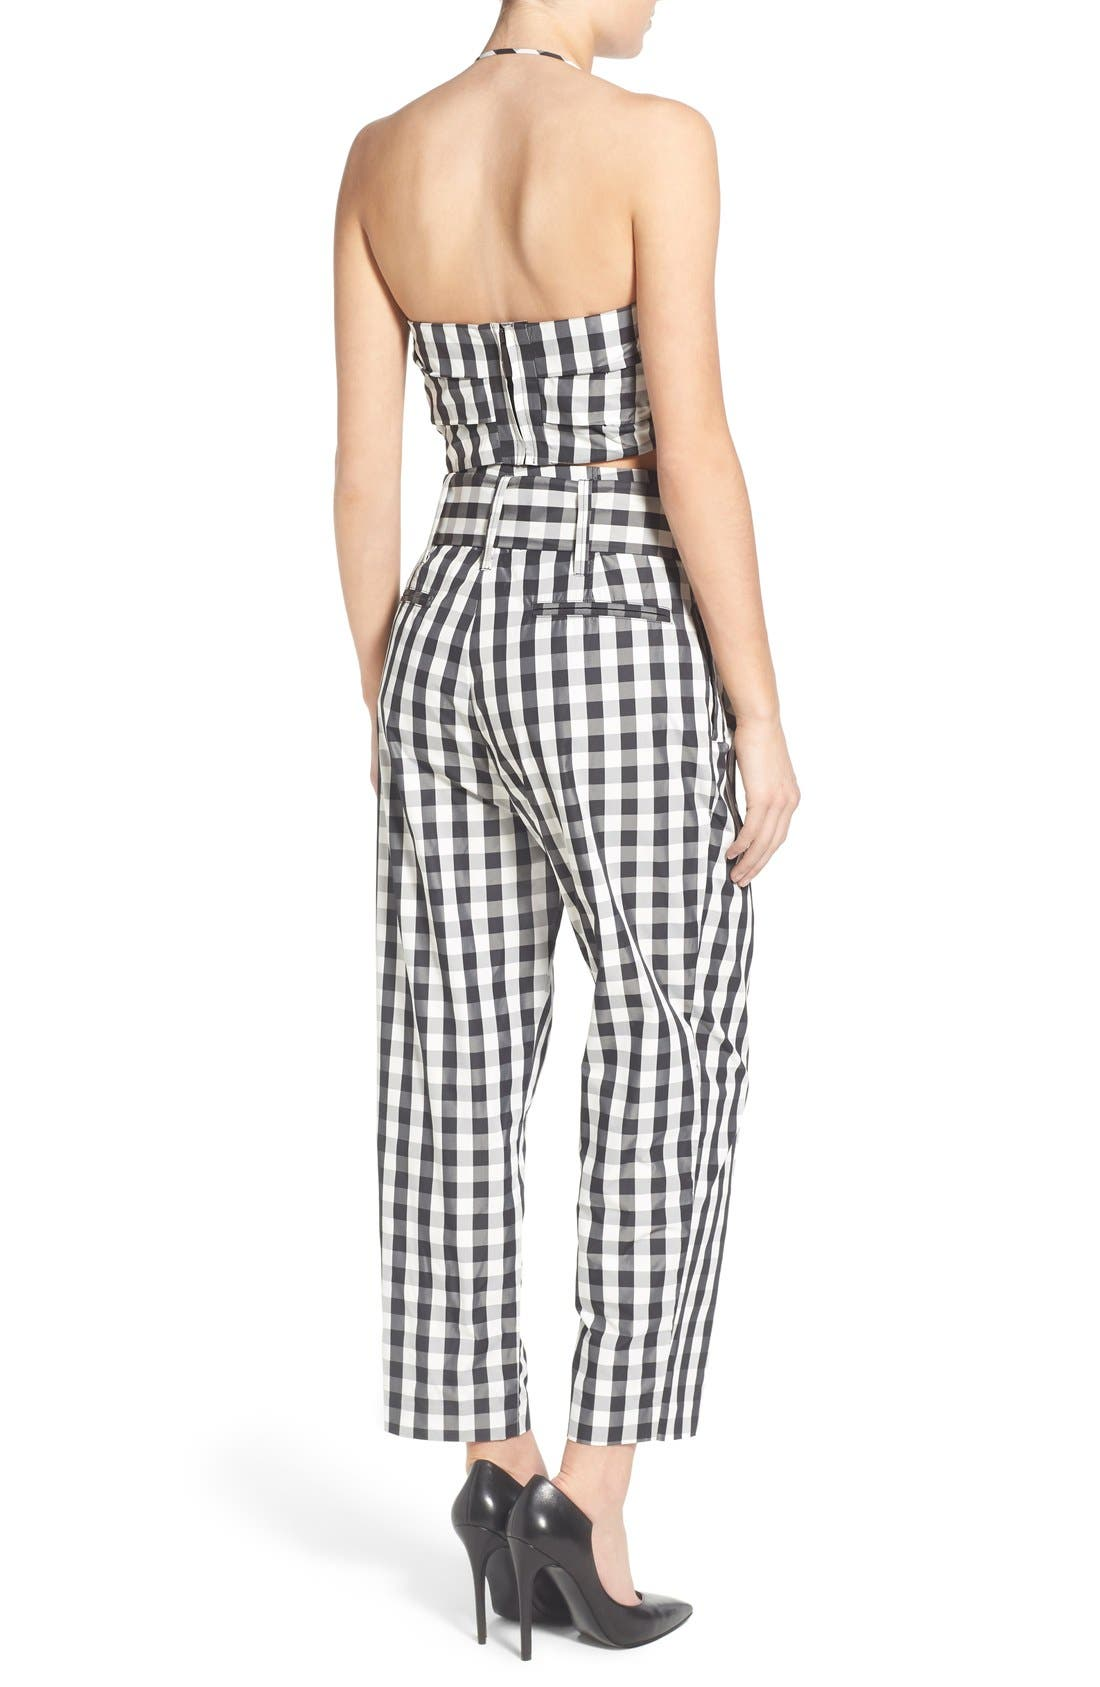 KENDALL + KYLIE, Gingham High Rise Crop Pants, Alternate thumbnail 6, color, 003